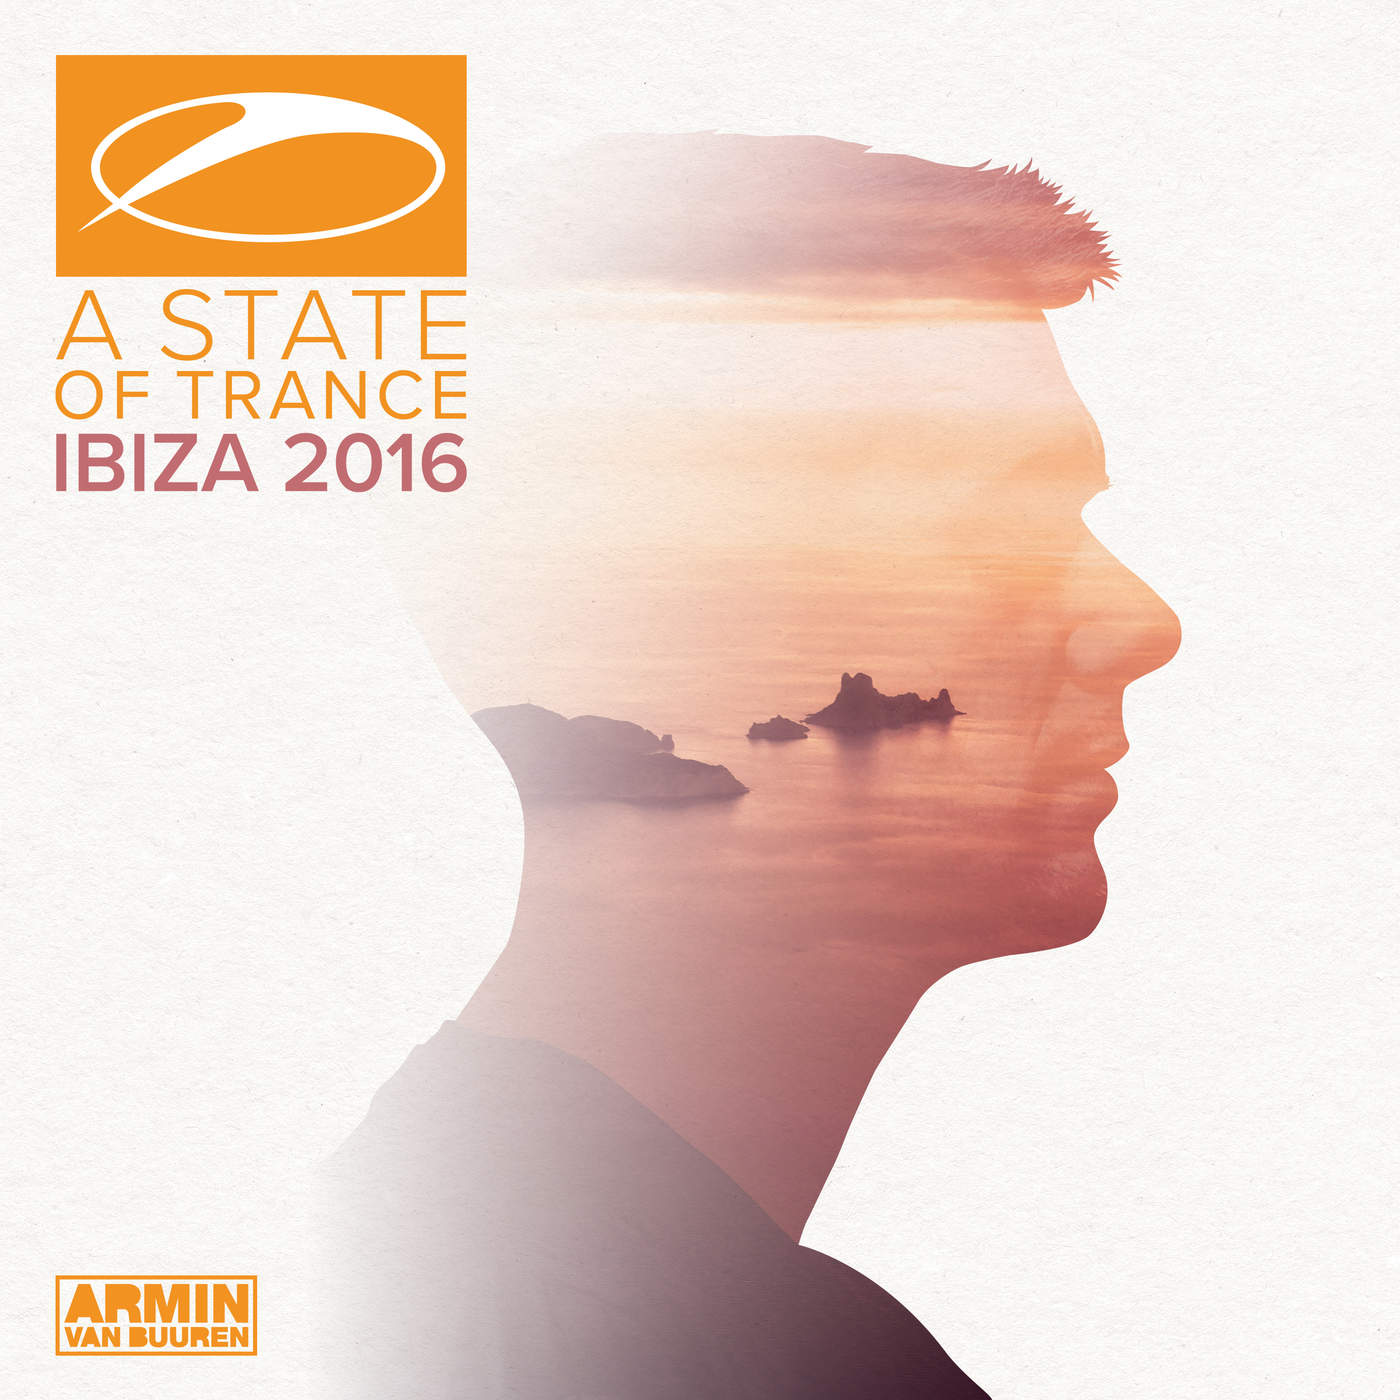 a-state-of-trance-ibiza-2016-mixed-by-armin-van-buuren